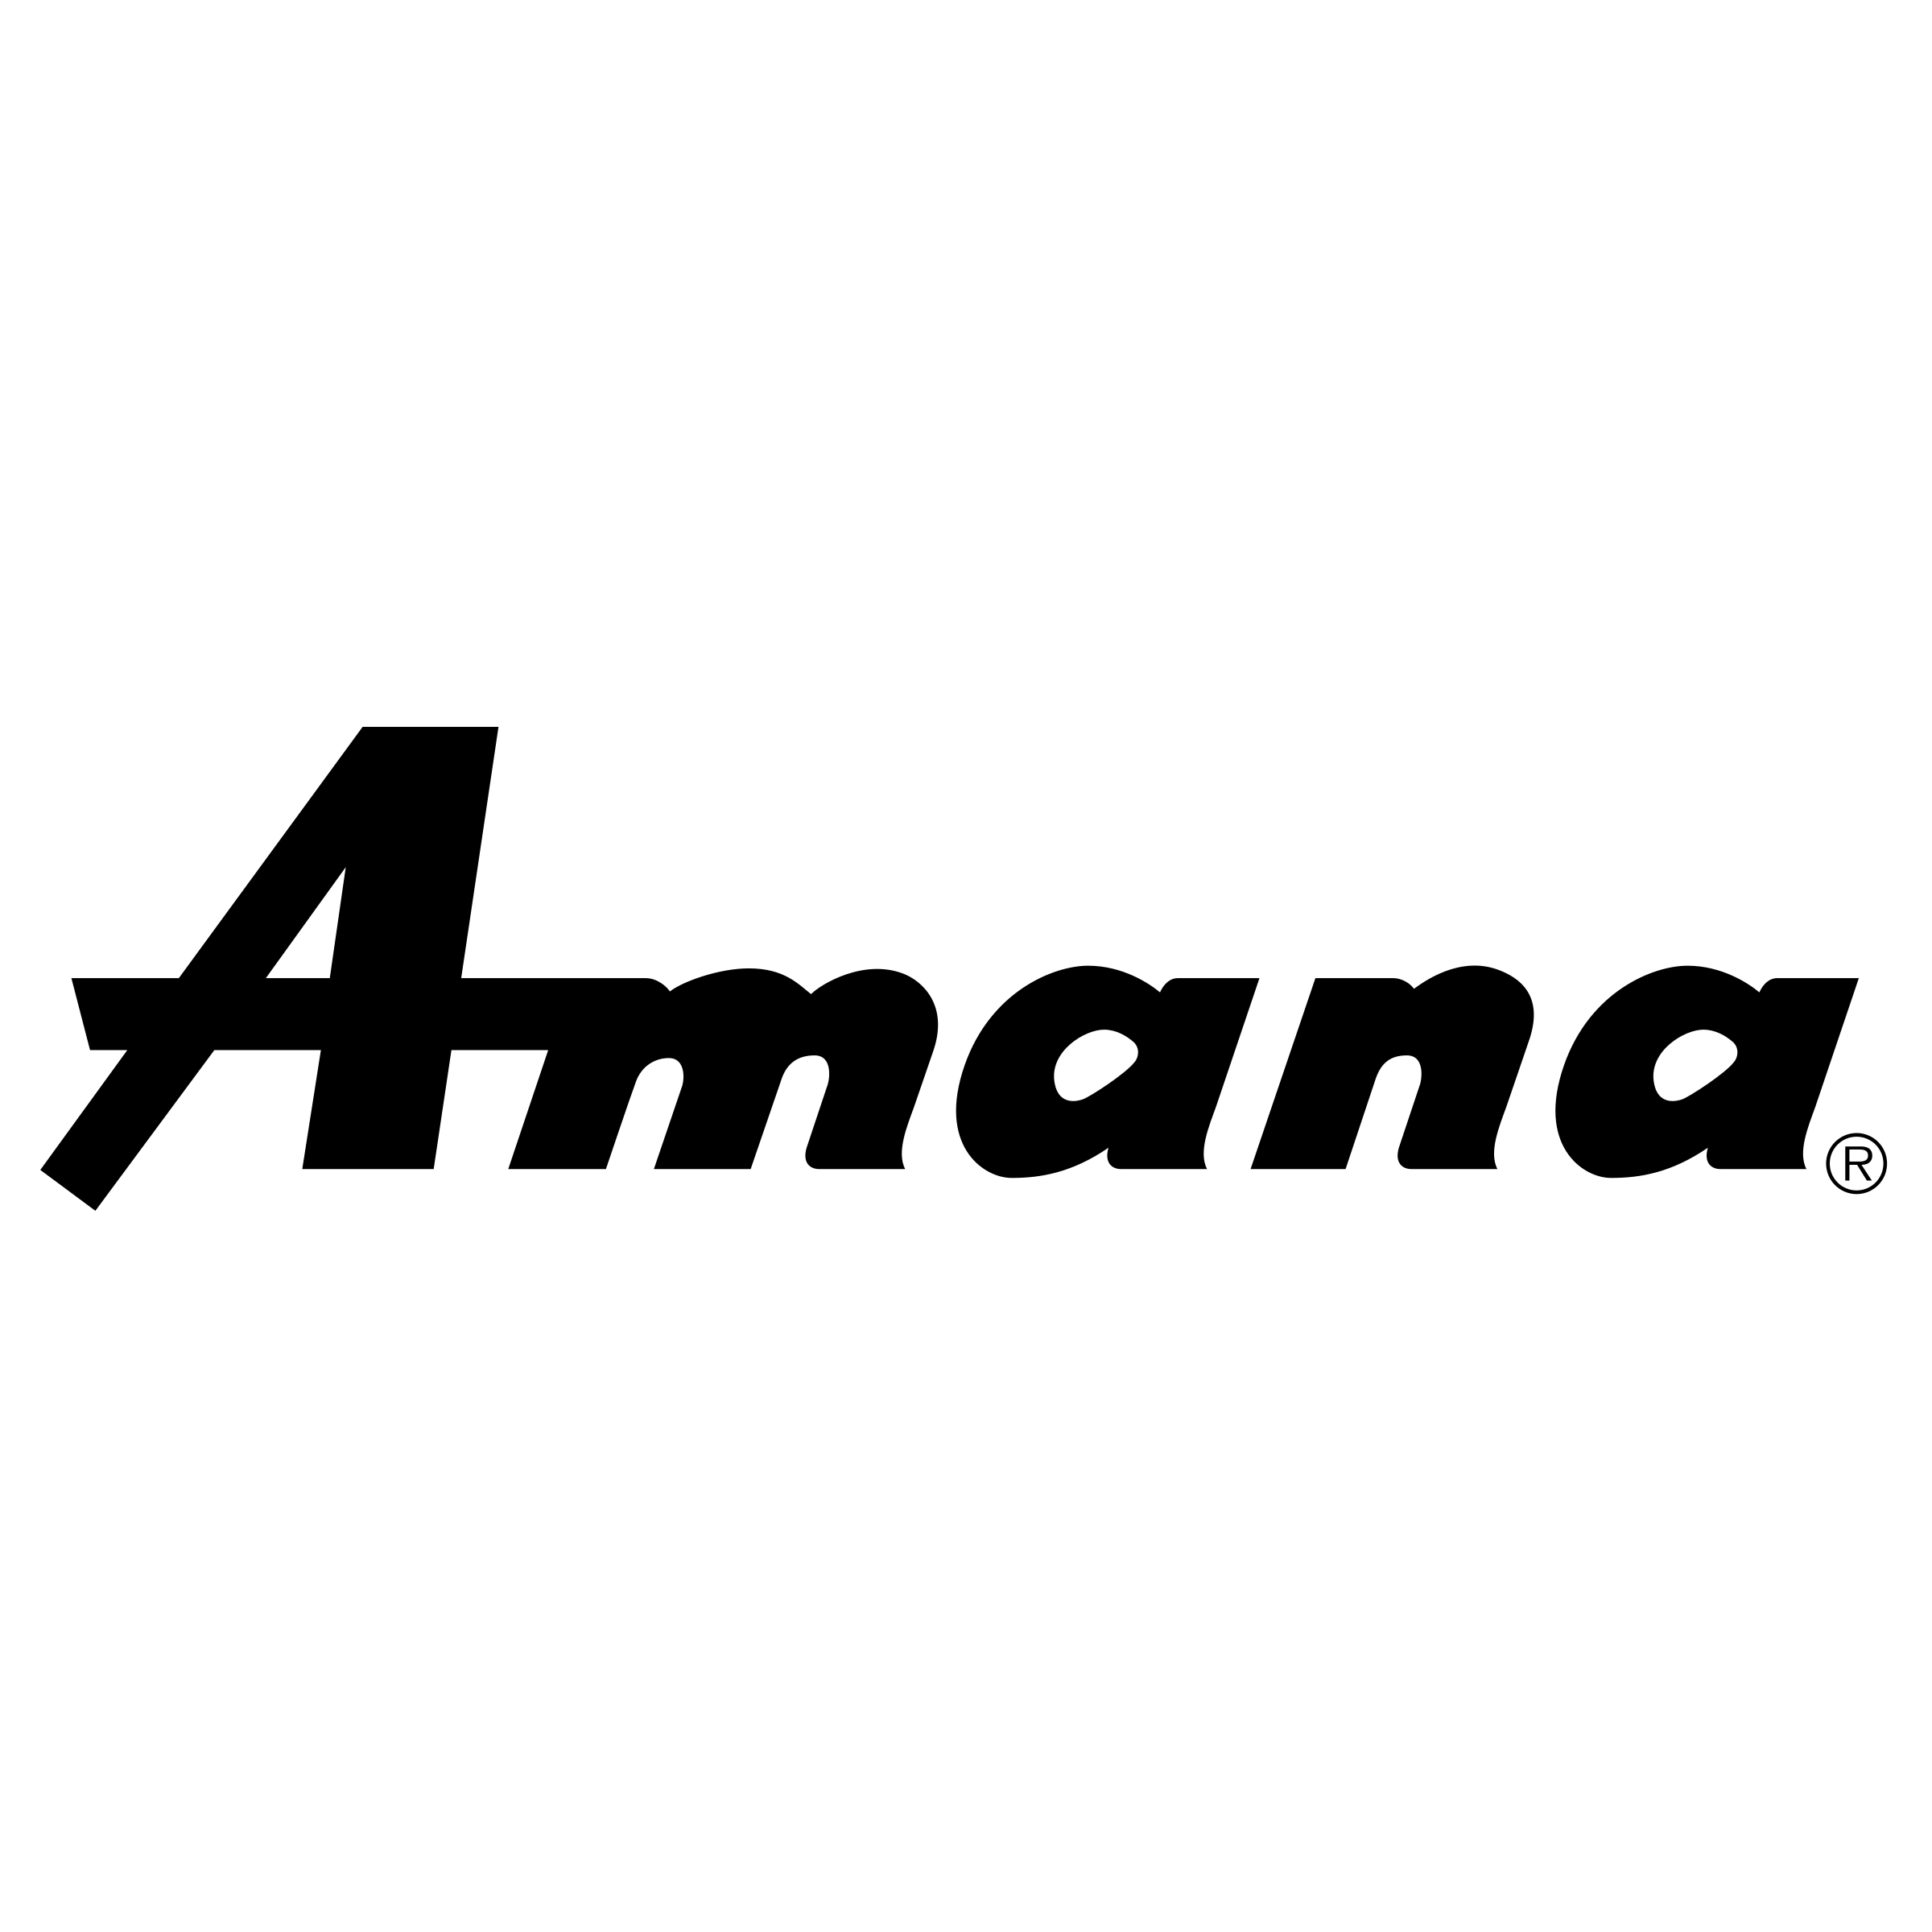 Amana Logo - Amana Logo PNG Transparent & SVG Vector - Freebie Supply